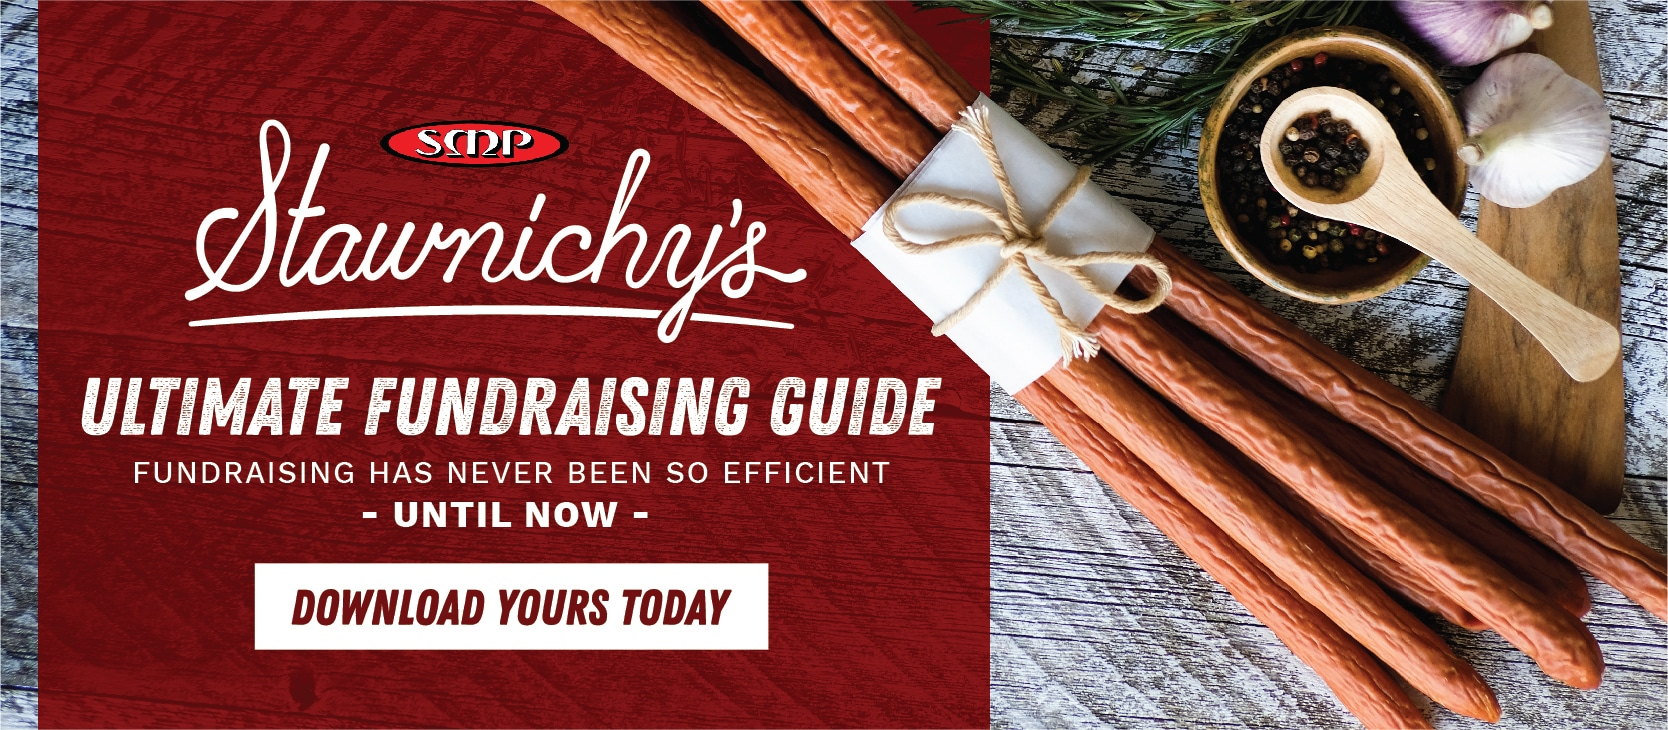 Stawnichys Ultimate Fundraising Guide